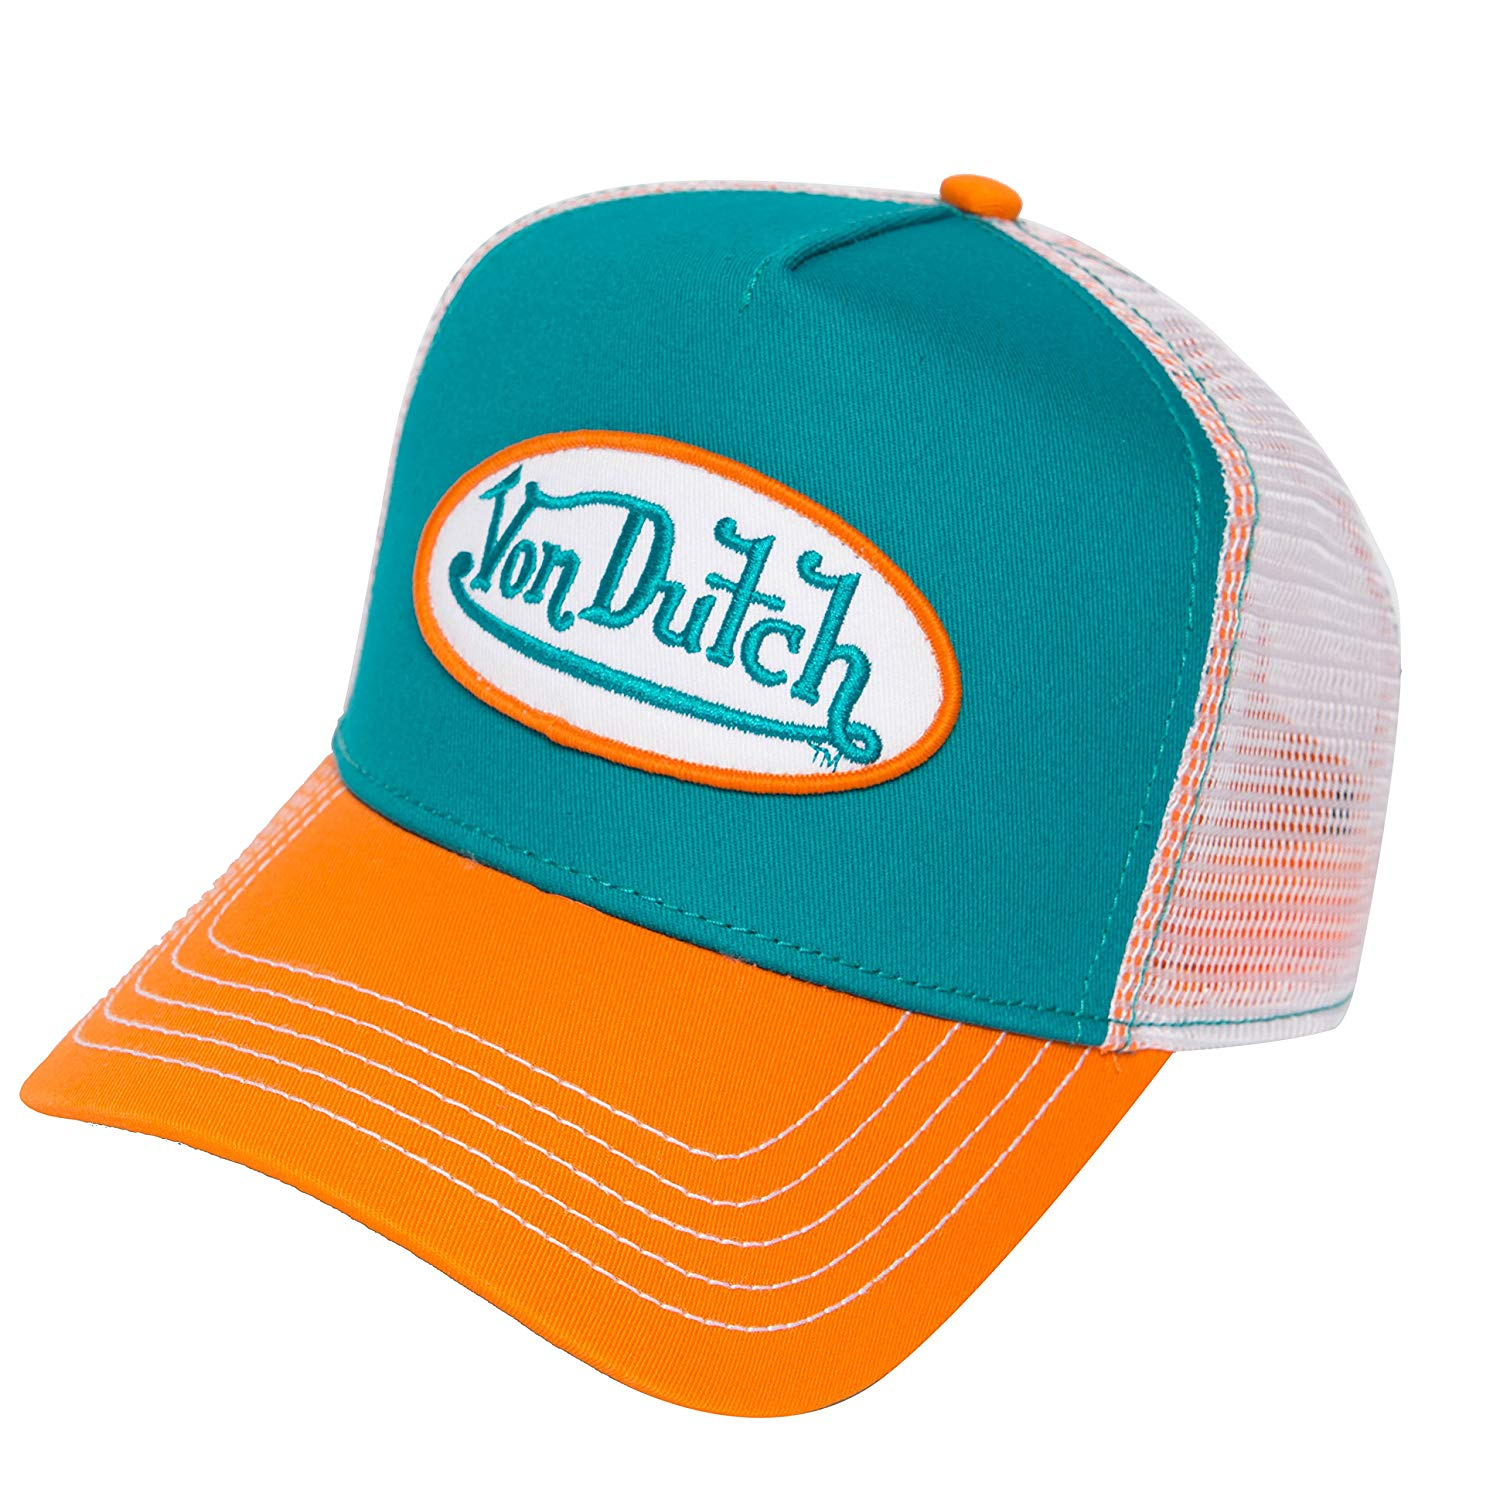 ed61a26e Get Quotations · Von Dutch Trucker Hat with Logo Patch Baseball Cap,  Celebrities Choice